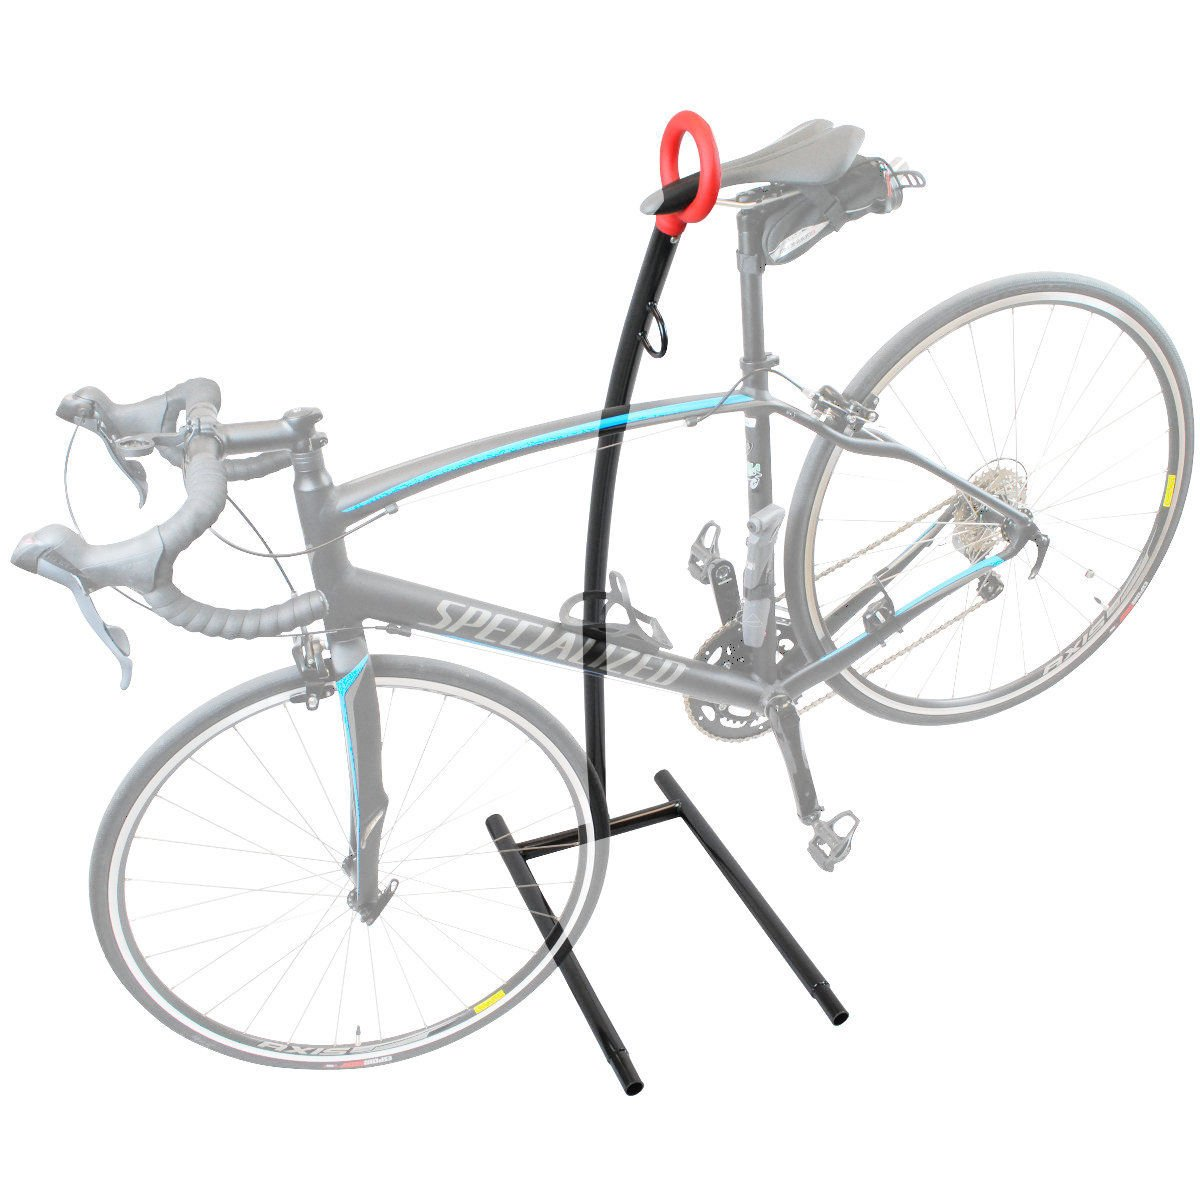 New Bike Storage Floor Rack Parking Stand Holder Wheel Cycling Steel Home Garage N Special Intro Pricing! Hang Your Bike By The Seat!